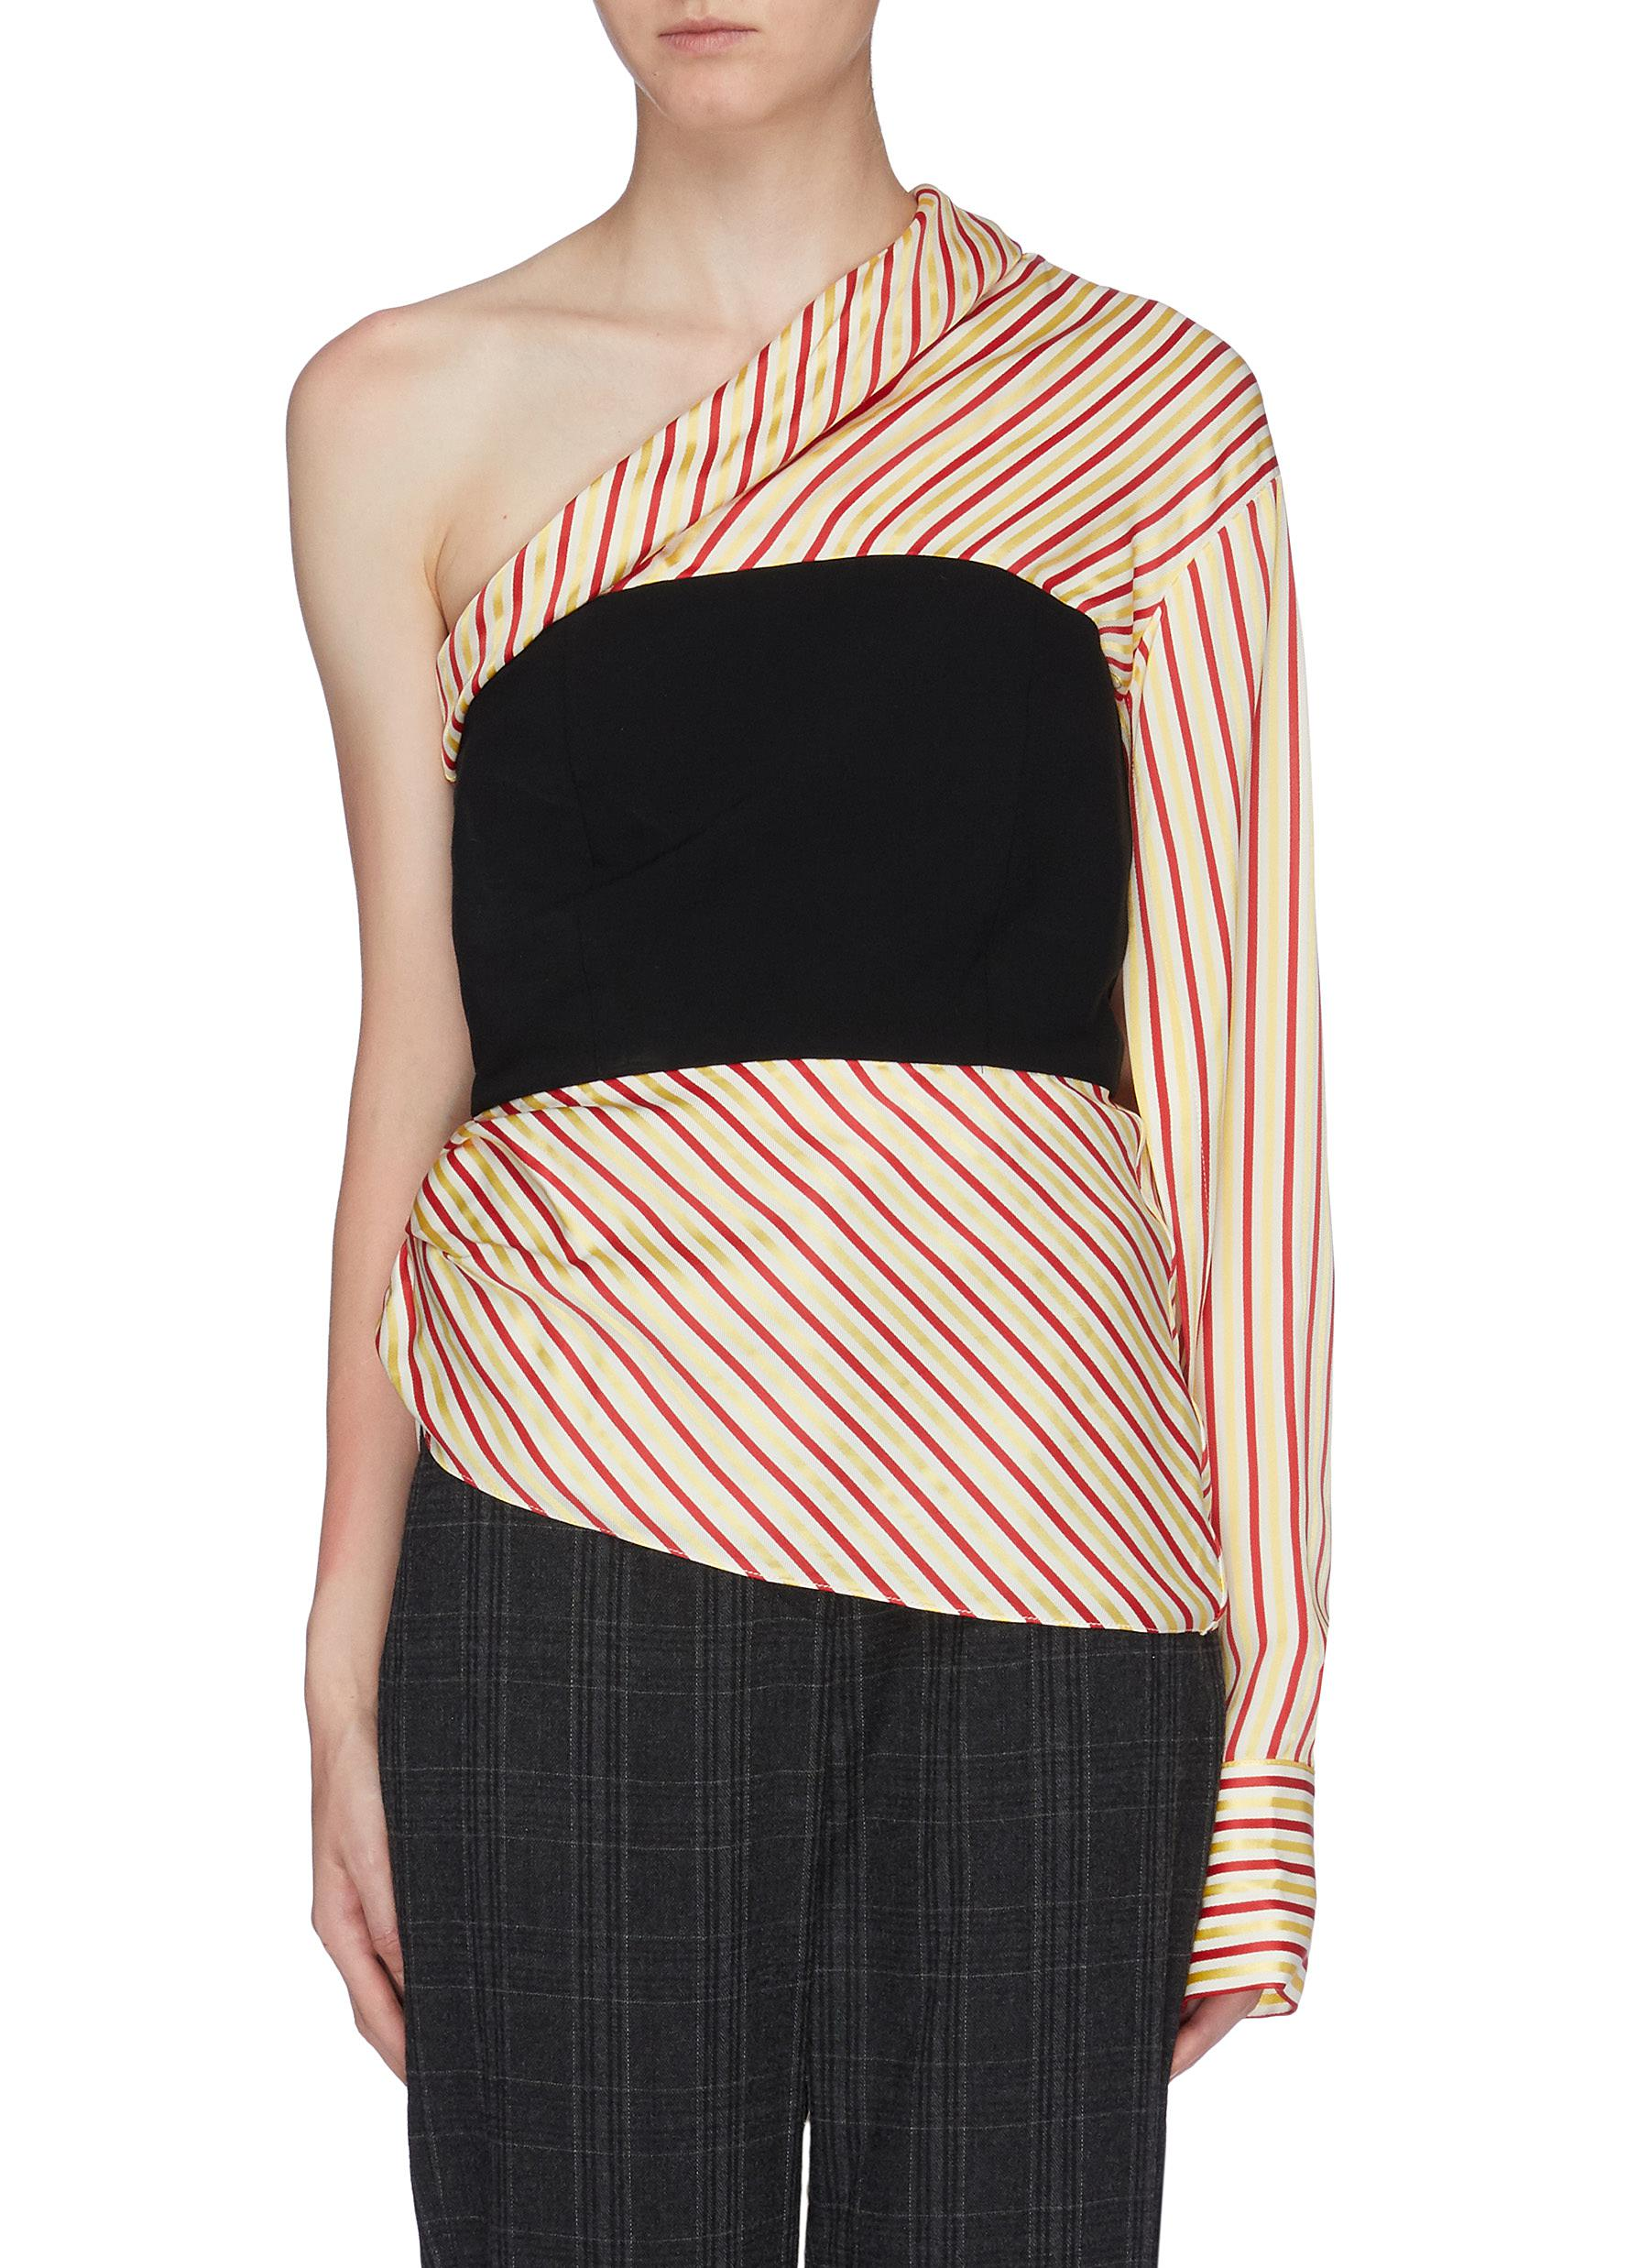 Paloma contrast bustier panel stripe one-shoulder top by Hellessy